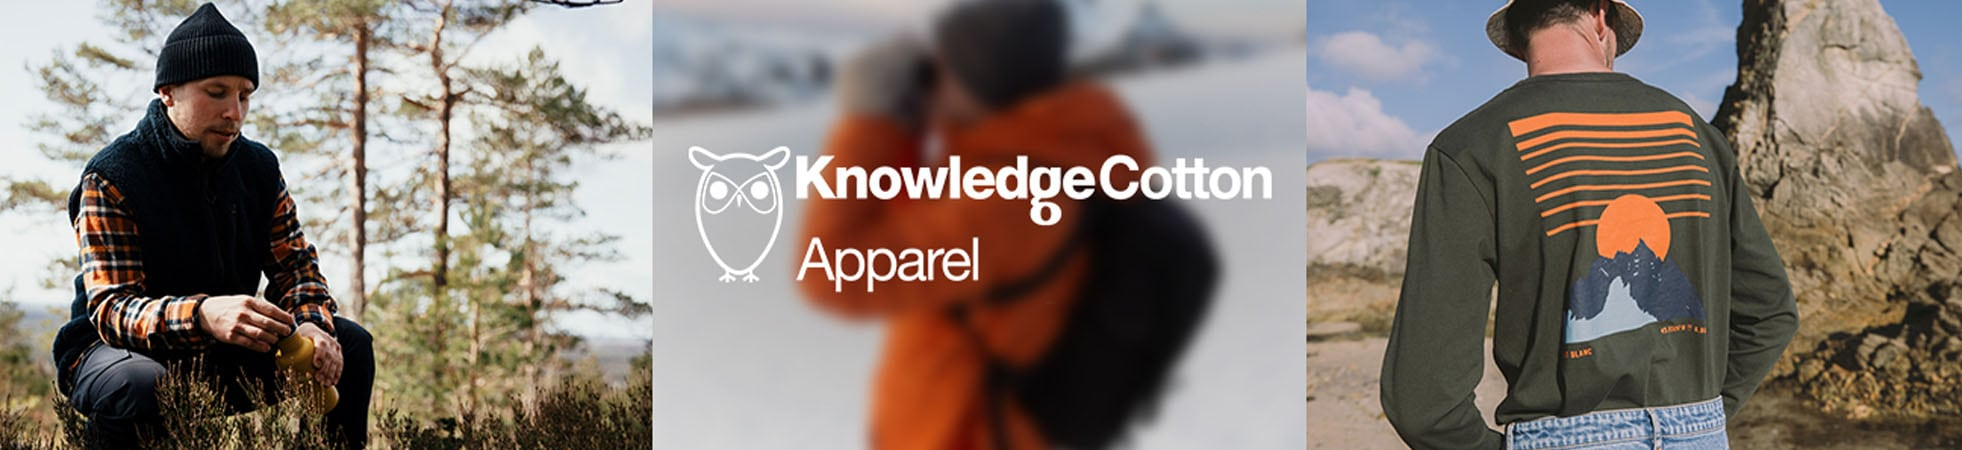 KnowledgeCotton Apparel Men's Clothing